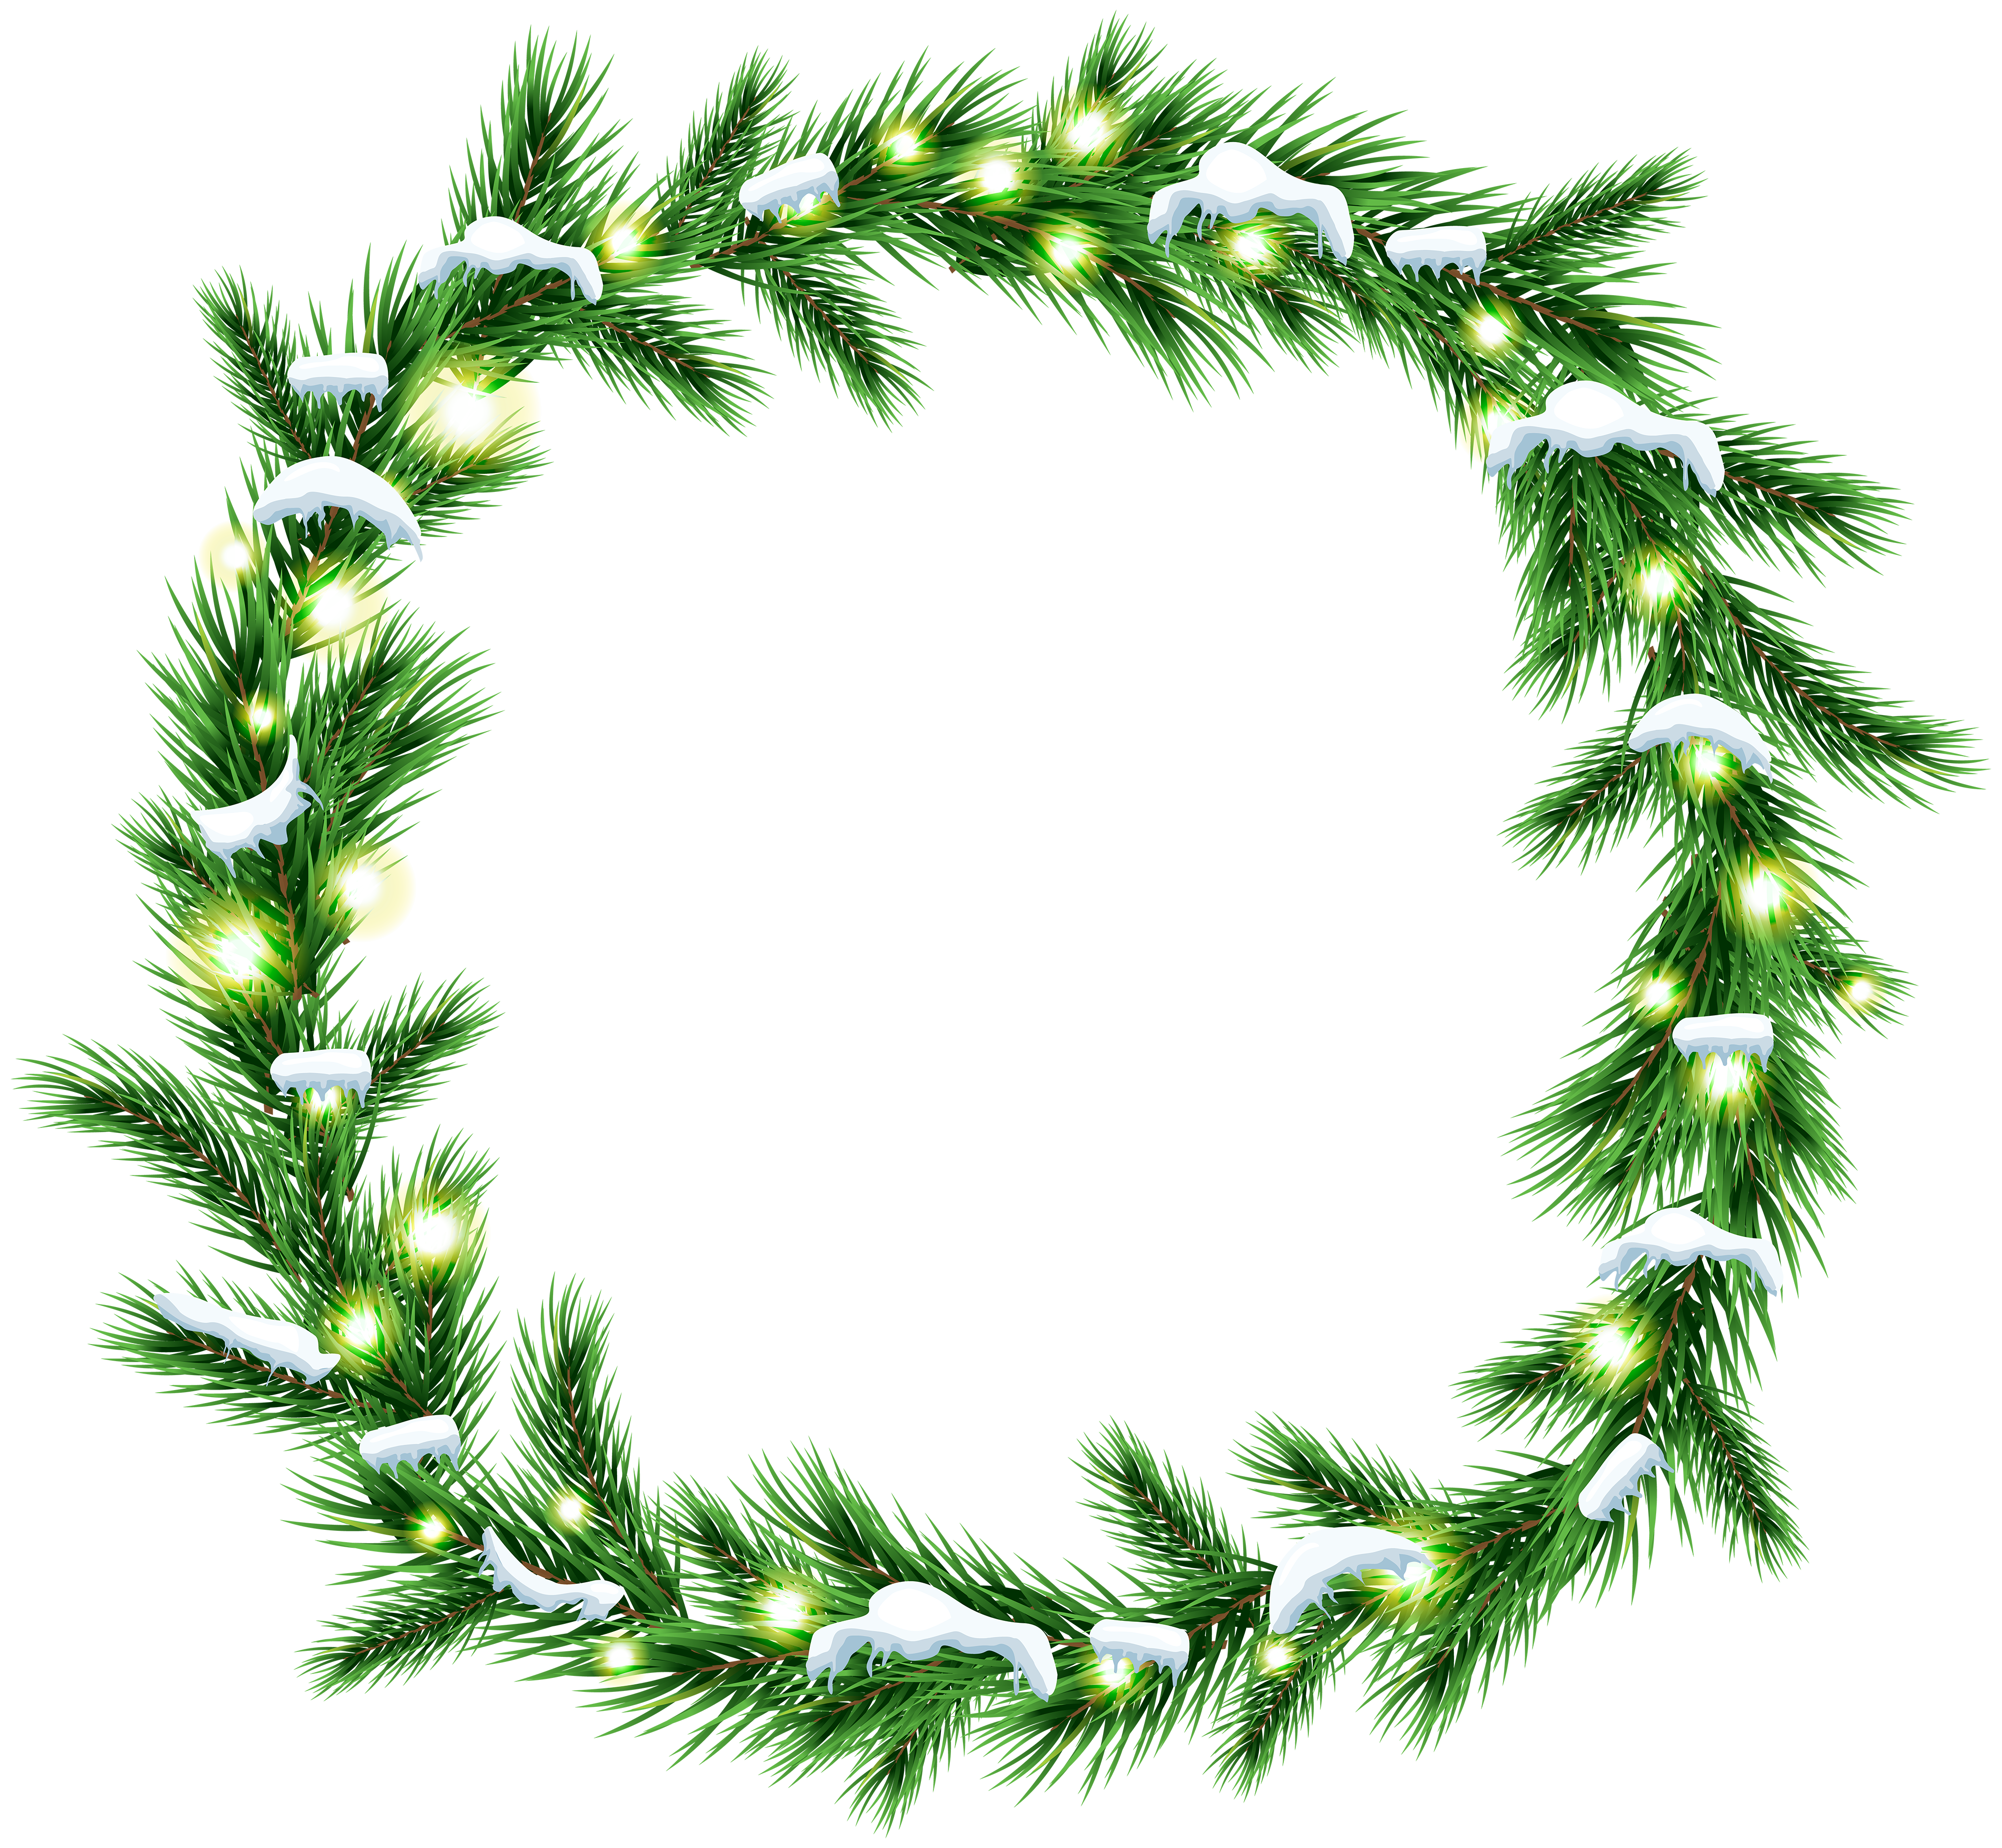 Christmas wreath clipart black and white graphic royalty free library Christmas Snowy Wreath PNG Clip Art | Gallery Yopriceville - High ... graphic royalty free library